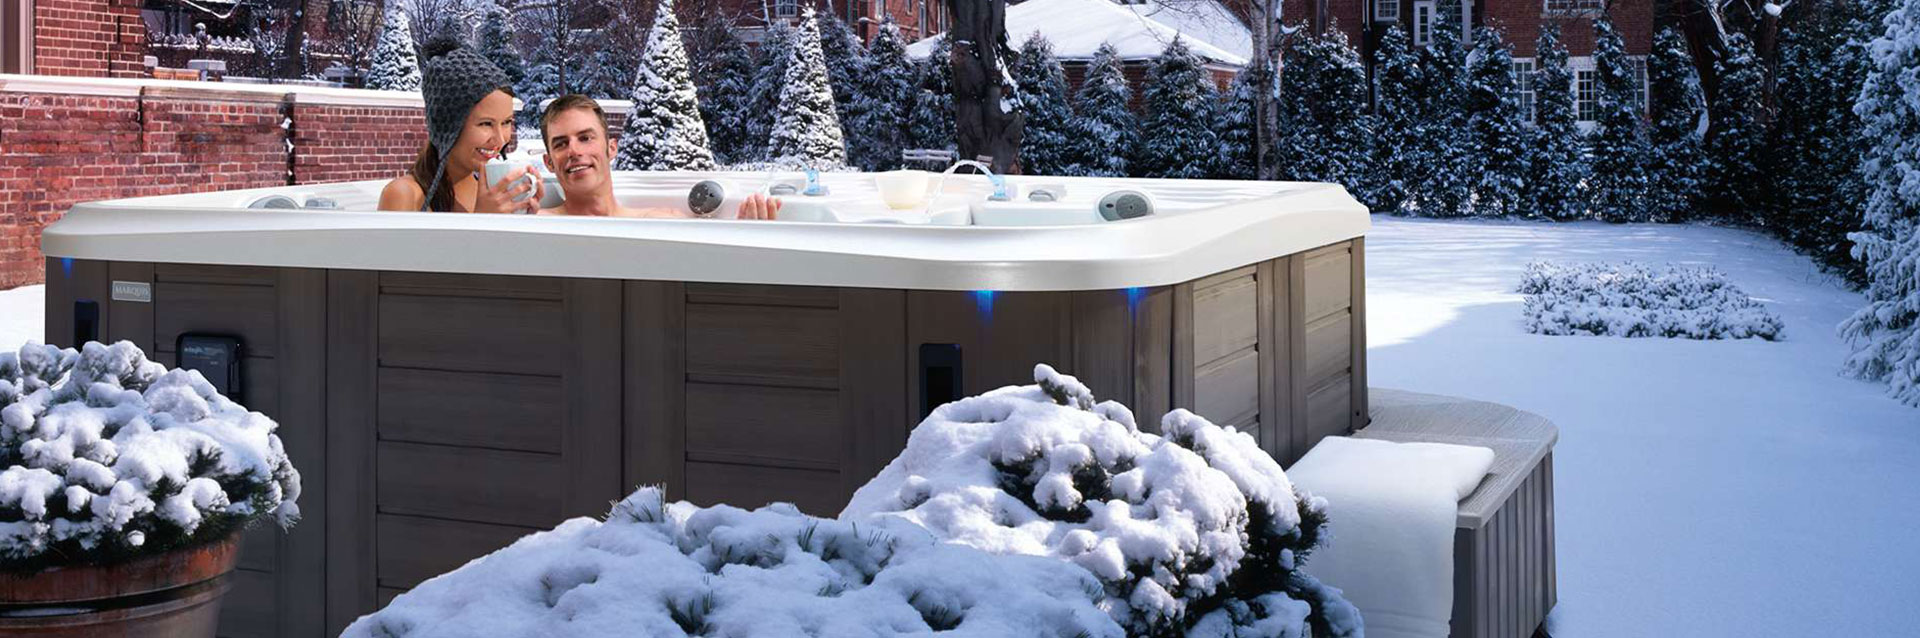 the promise hot tub in New Jersey